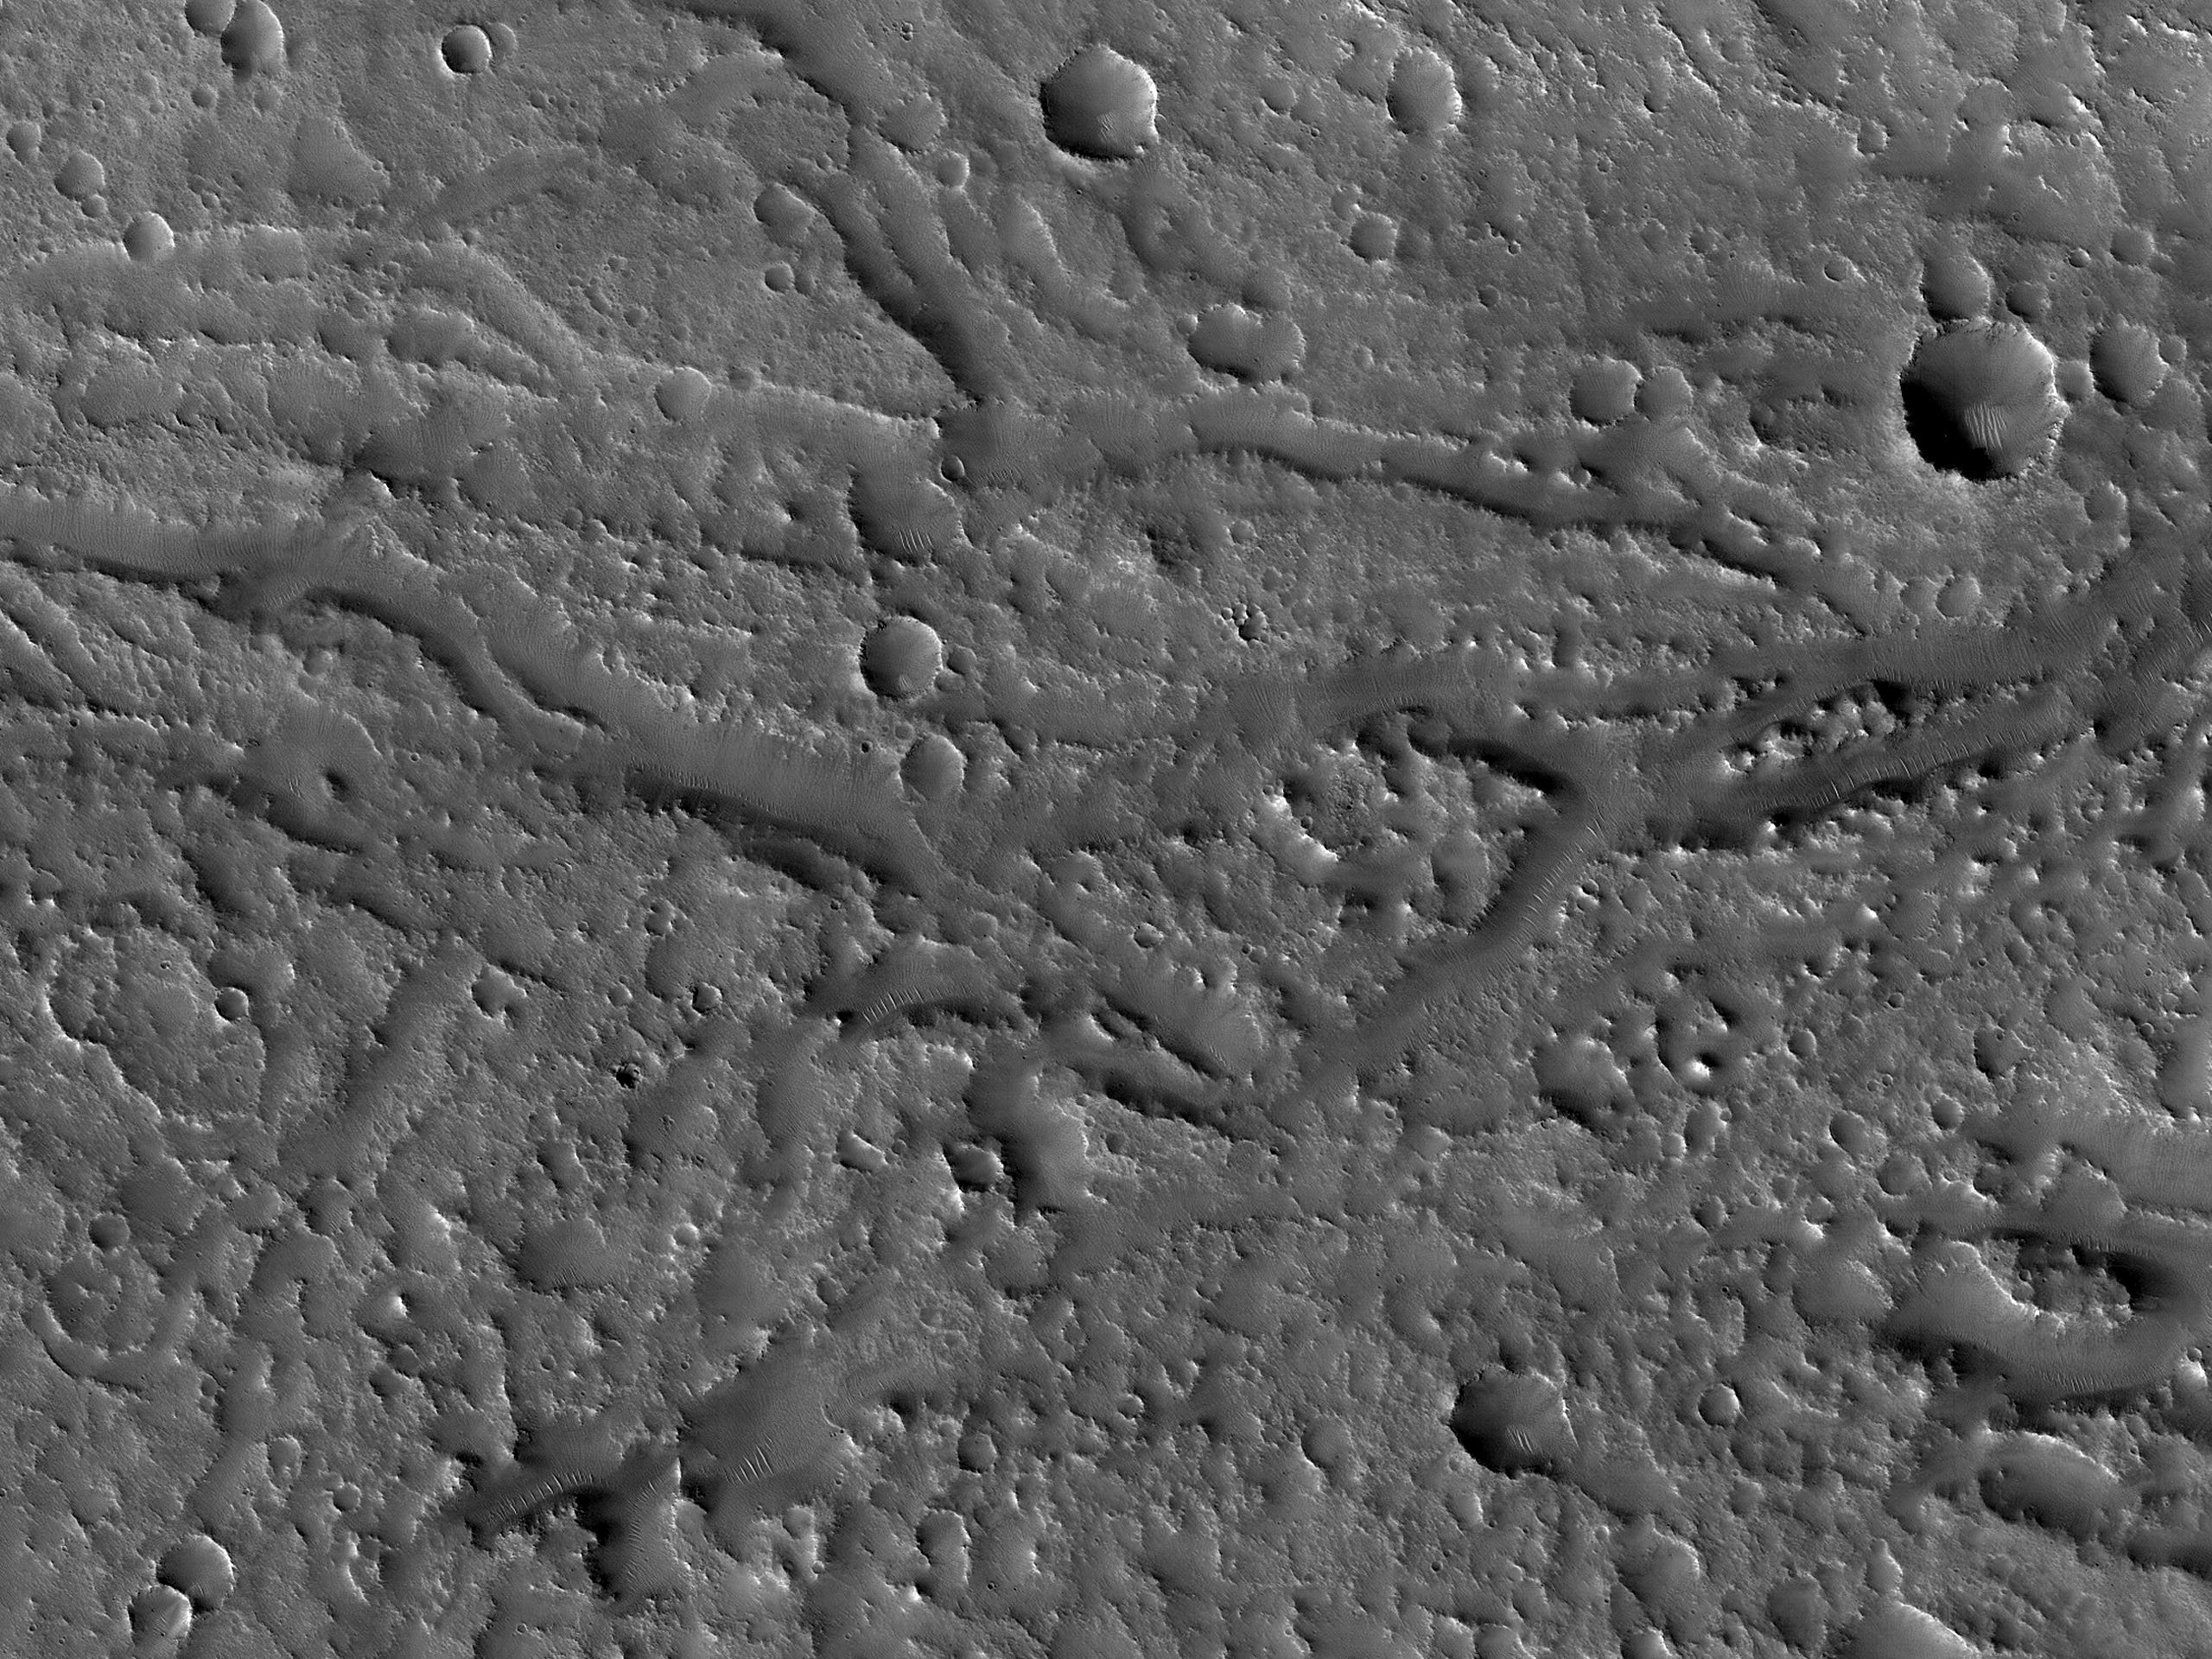 Channels to the West of Idaeus Fossae